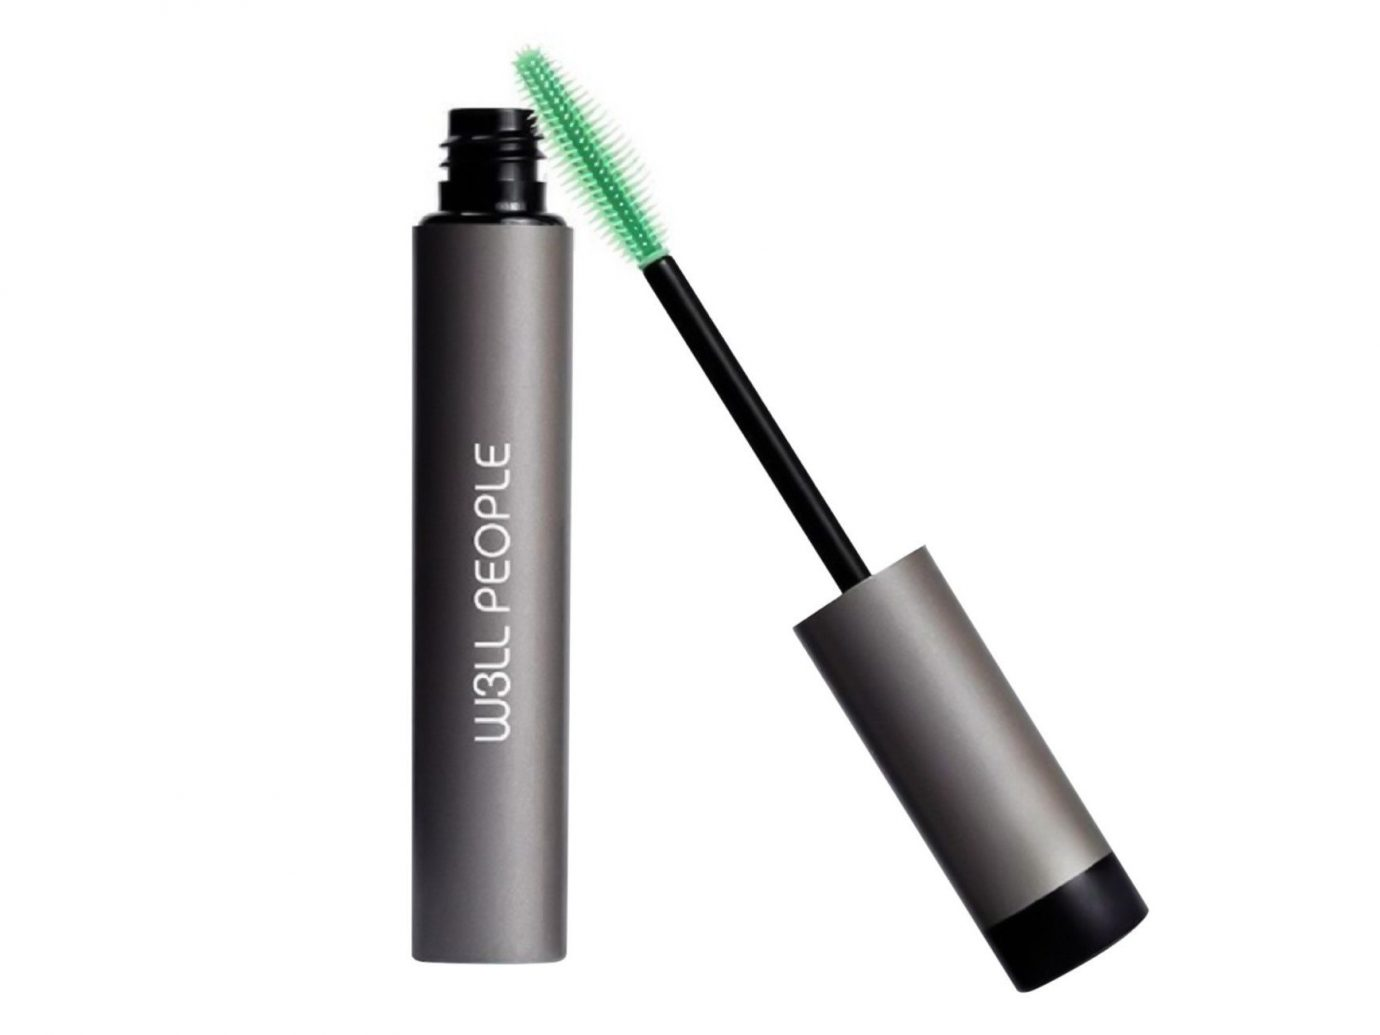 Health + Wellness Style + Design Travel Shop cosmetics product design product health & beauty mascara